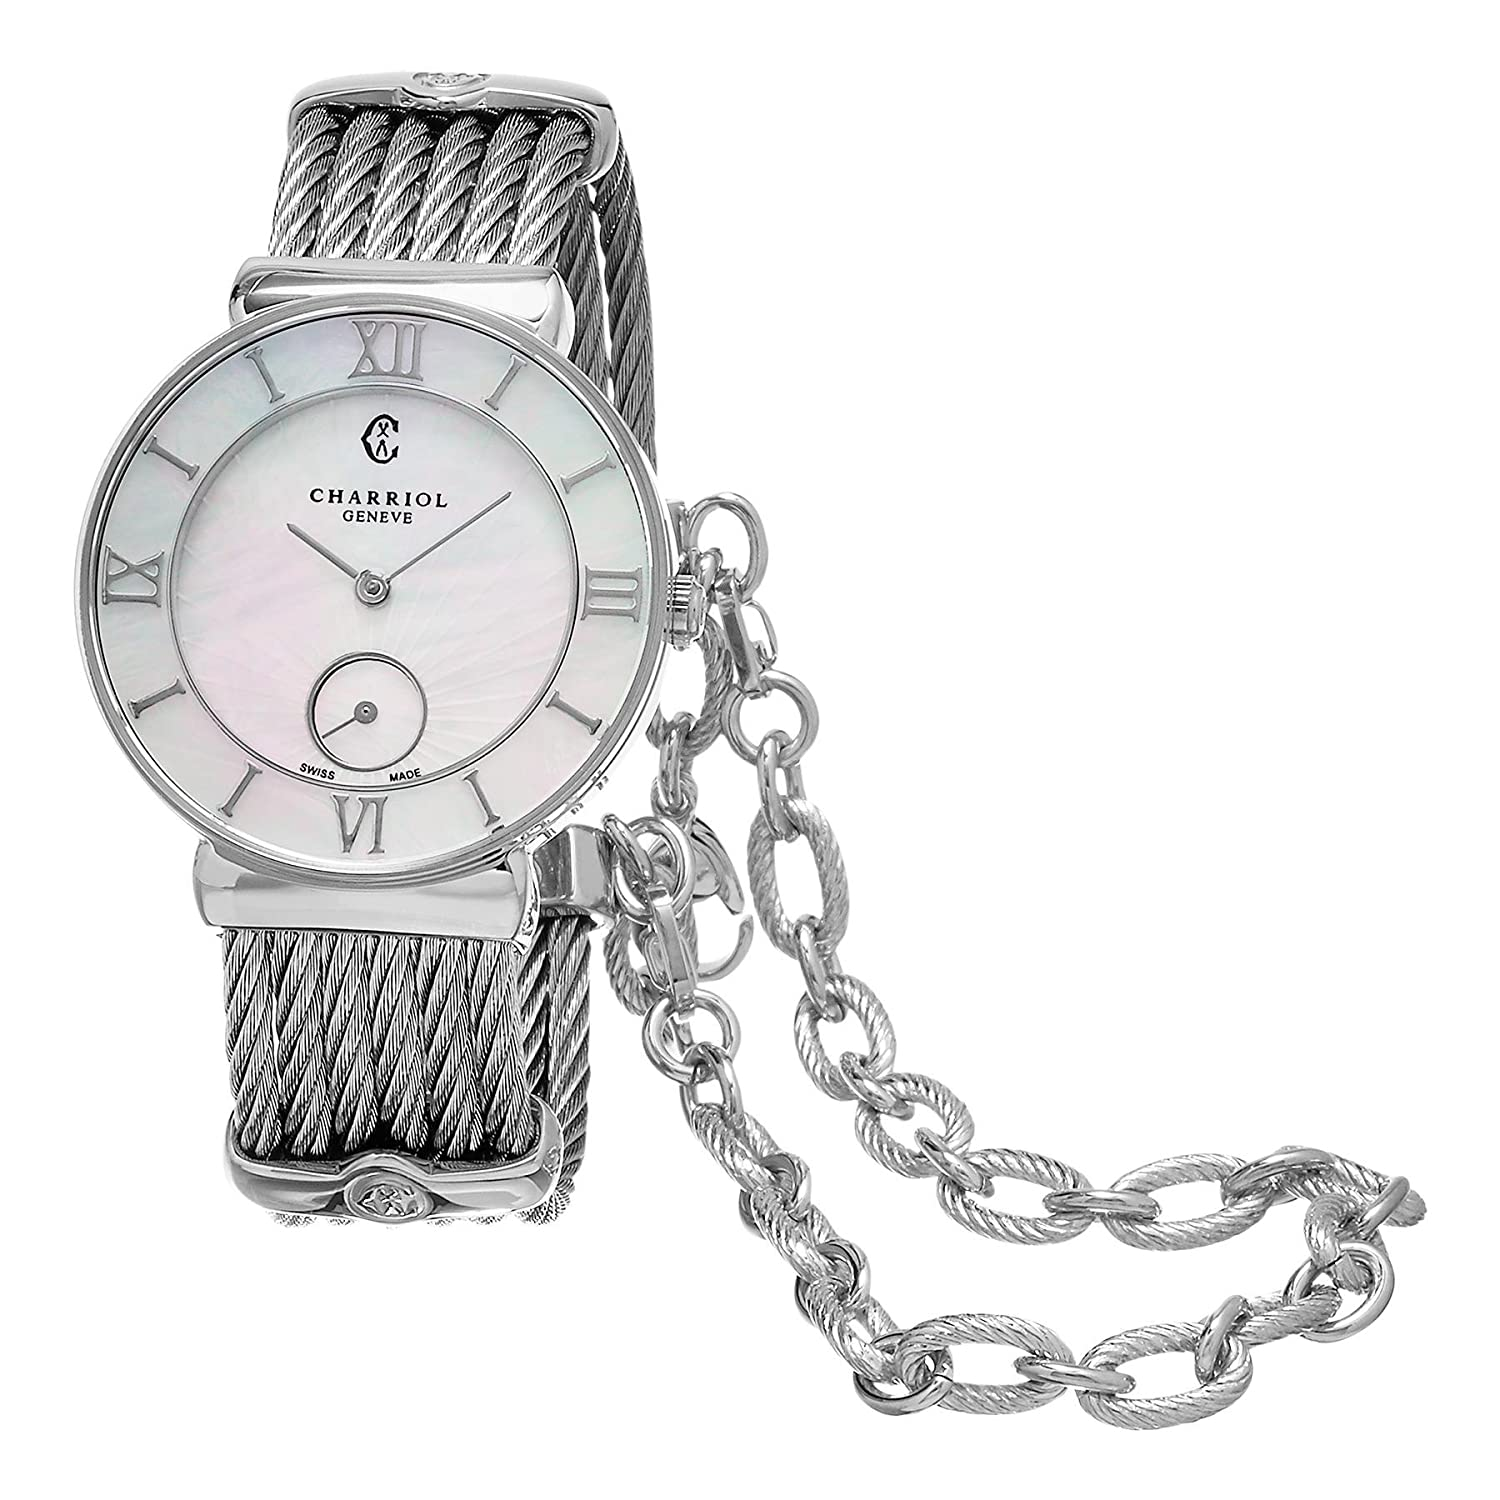 CHARRIOL ST-TROPEZ DAMEN-ARMBANDUHR 30MM BATTERIE ST30SI.560.008